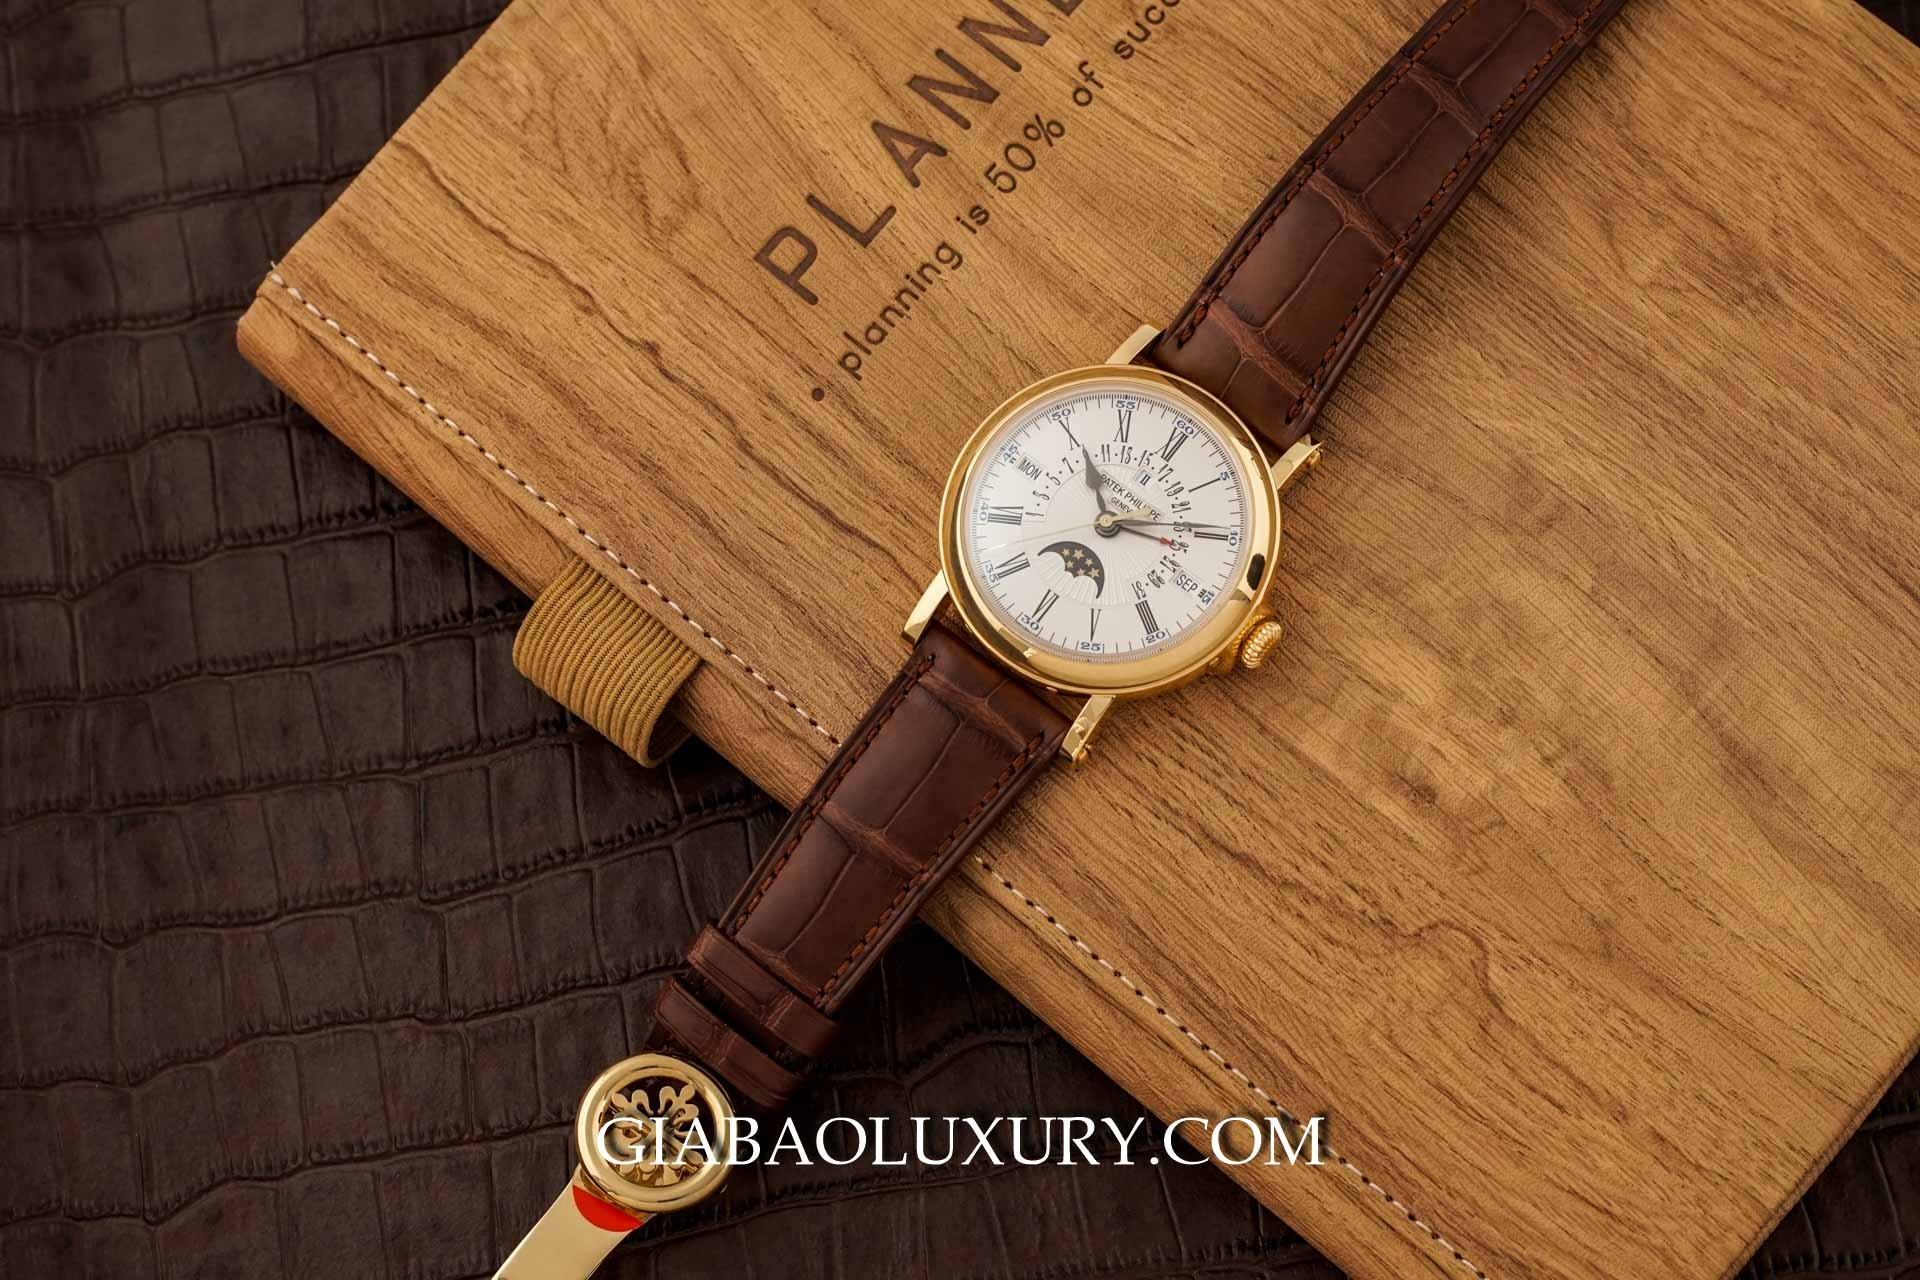 Đồng hồ Patek Philippe Grand Complications 5159J-001